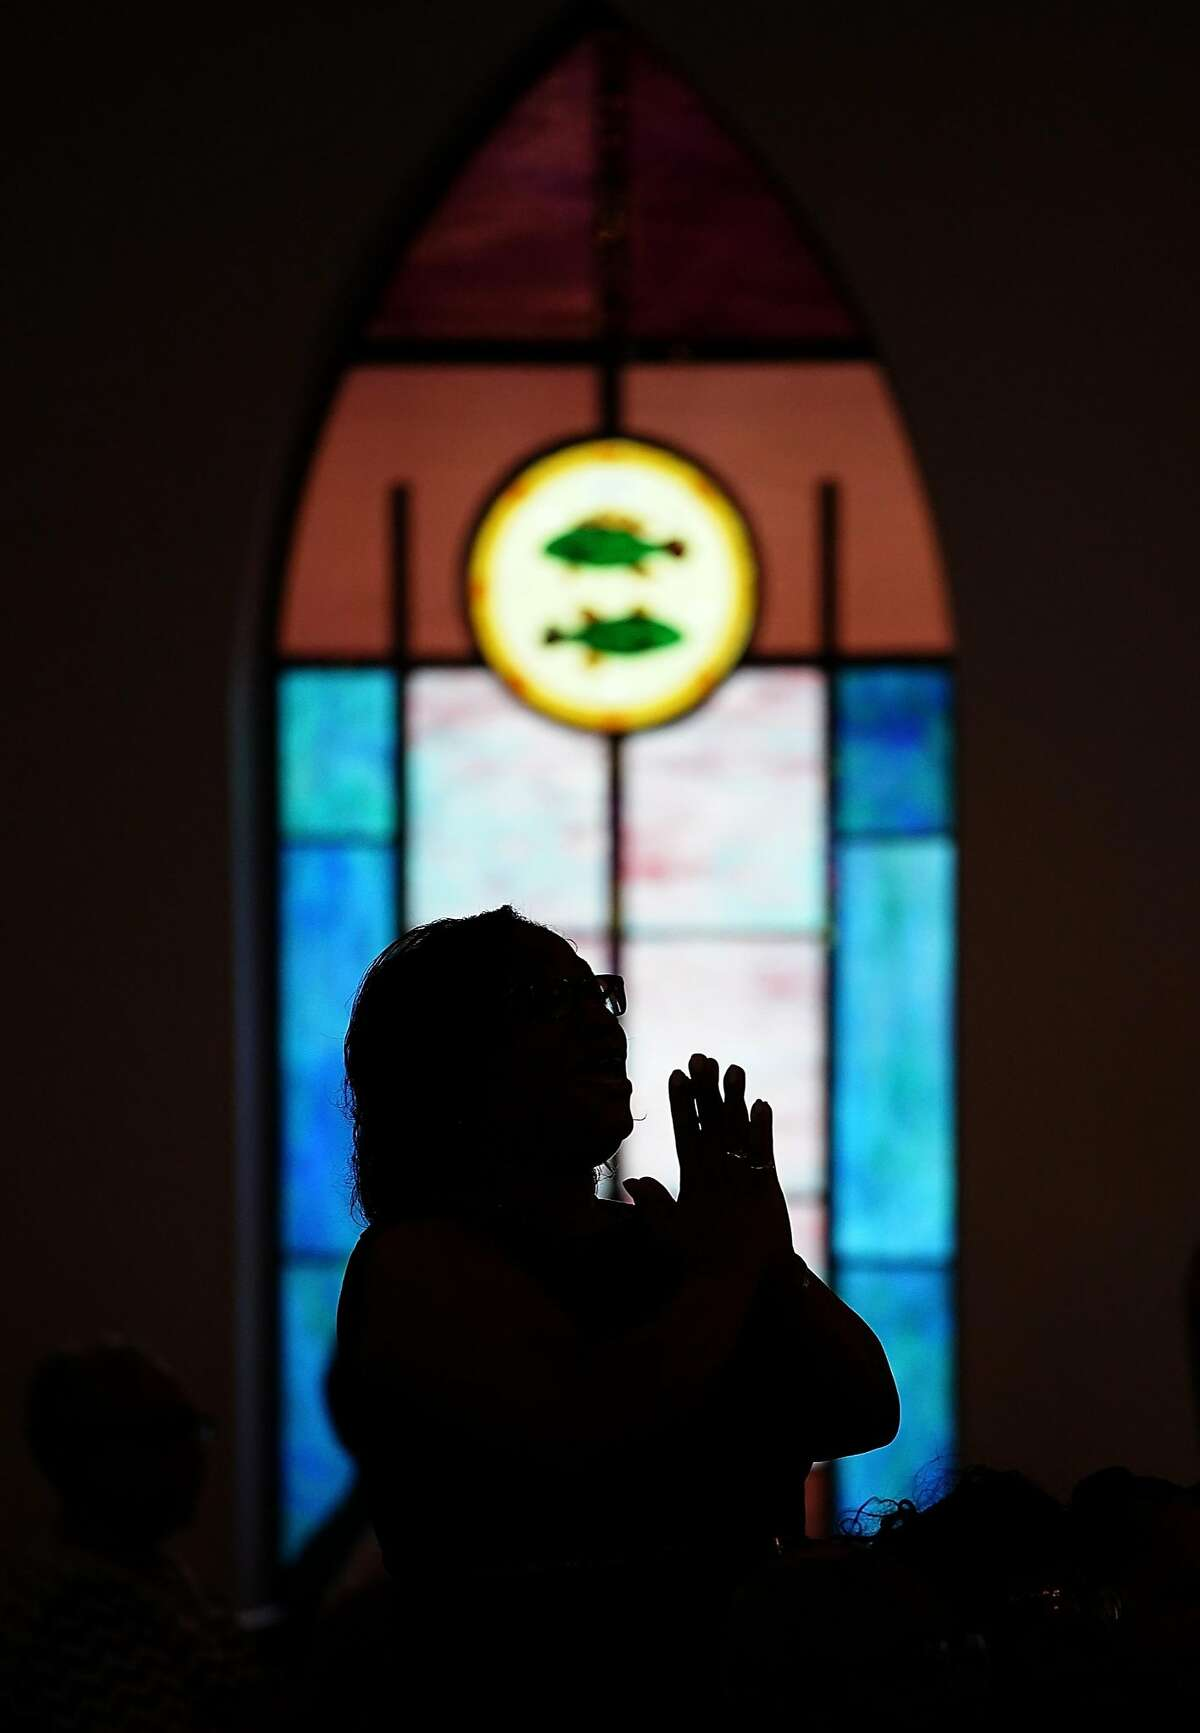 CHARLOTTESVILLE, VA - AUGUST 13: Worshipers sing while attending morning services at Mount Zion First African Baptist Church August 13, 2017 in Charlottesville, Virginia. The city of Charlottesville is still reeling following violence at a 'Unite the Right' rally held by white nationalists, neo-Nazis and members of the 'alt-right'. (Photo by Win McNamee/Getty Images)